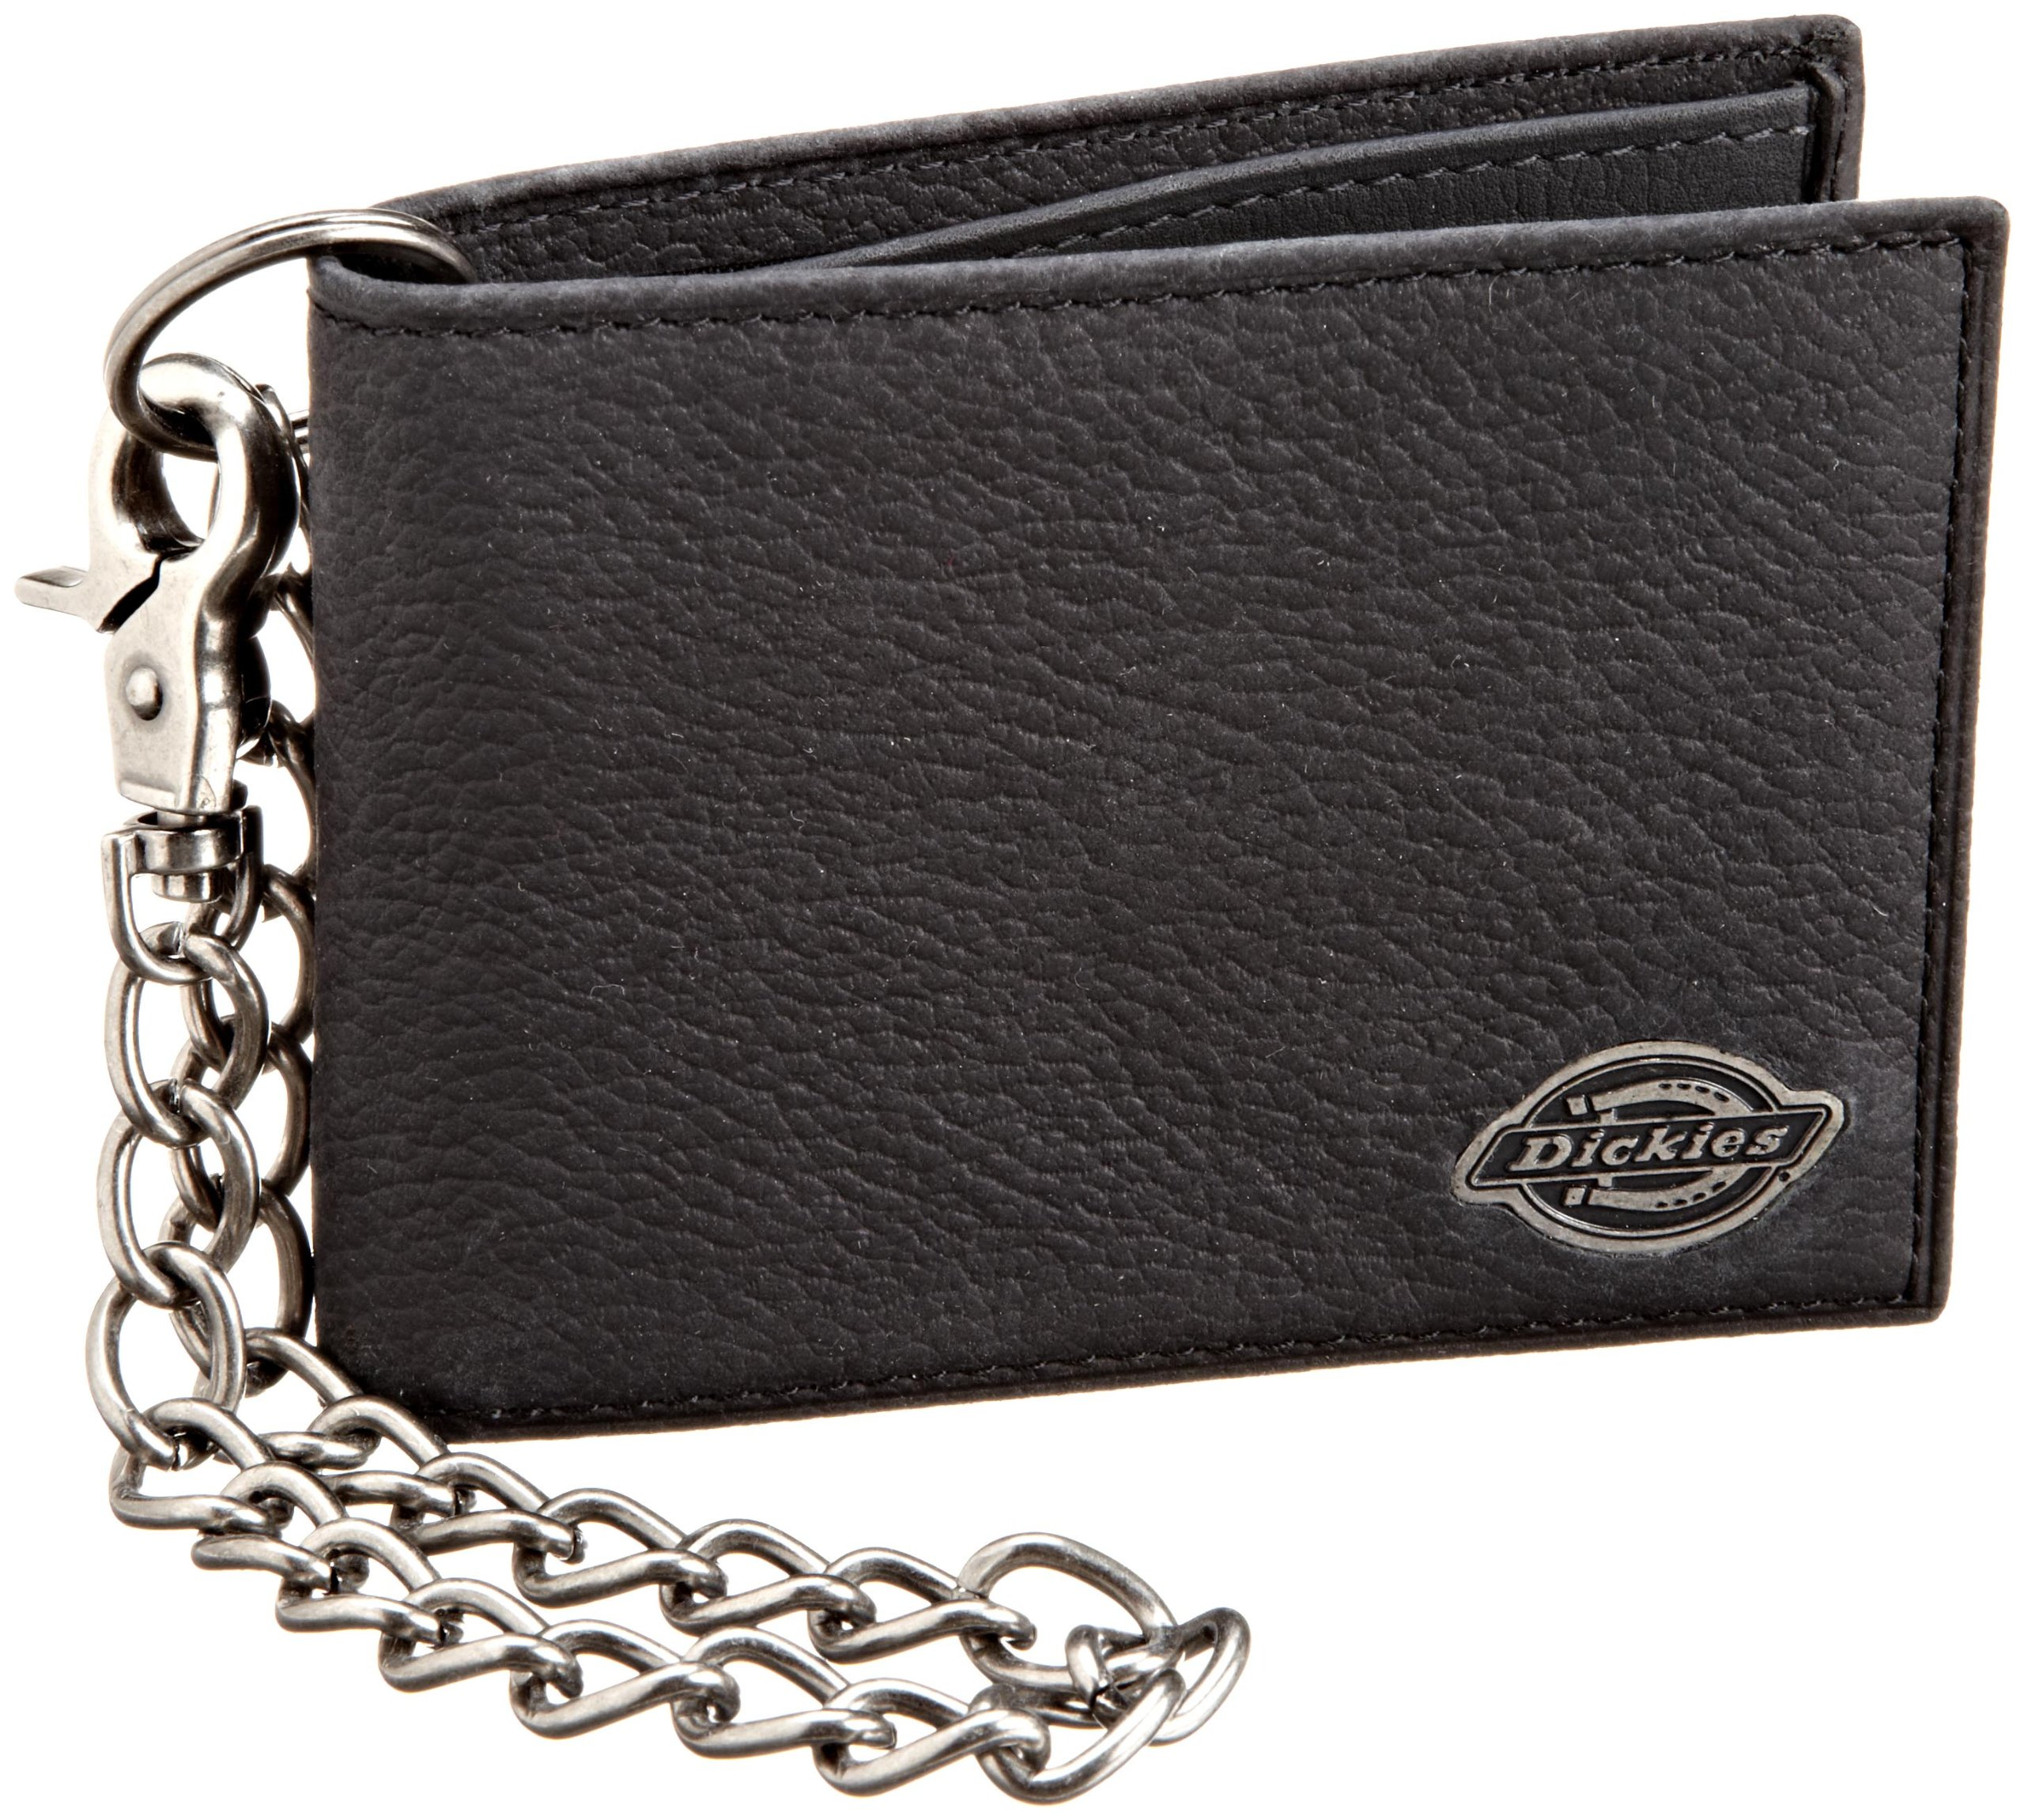 Dickies Men's Slimfold Wallet,Black with Chain